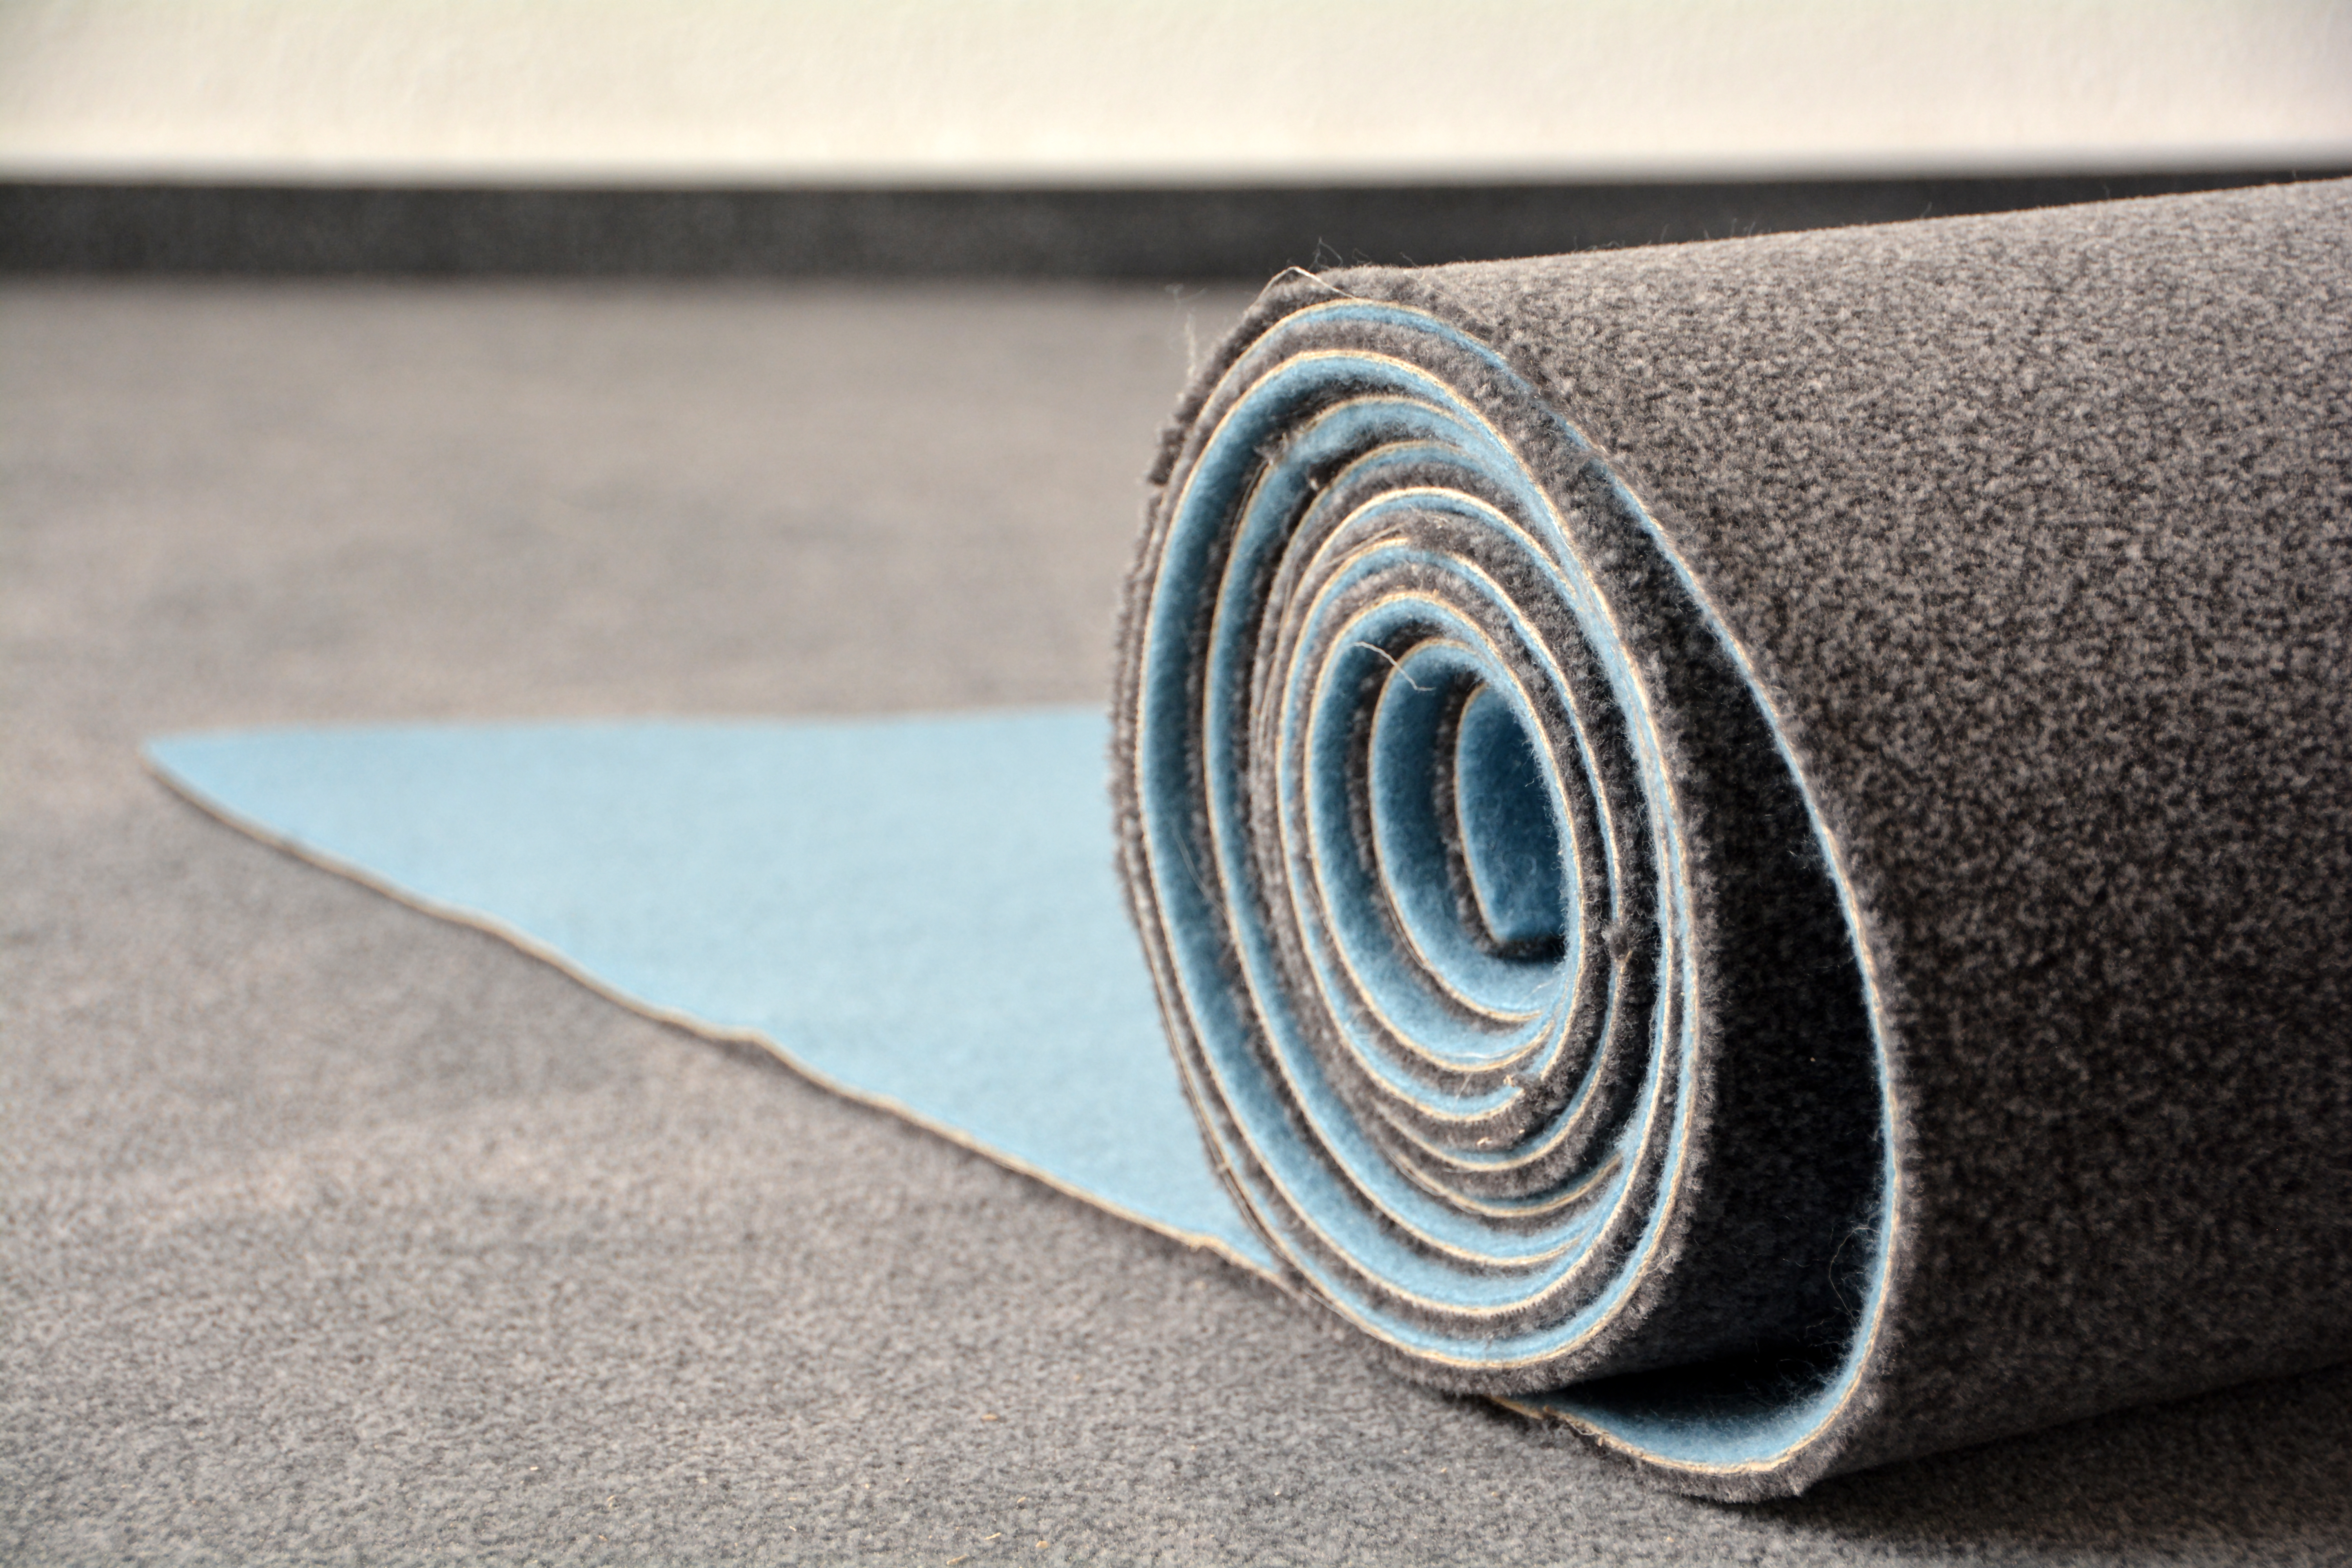 carpets cheap carpets carpet remnants carpet offcuts - Carpets For Sale